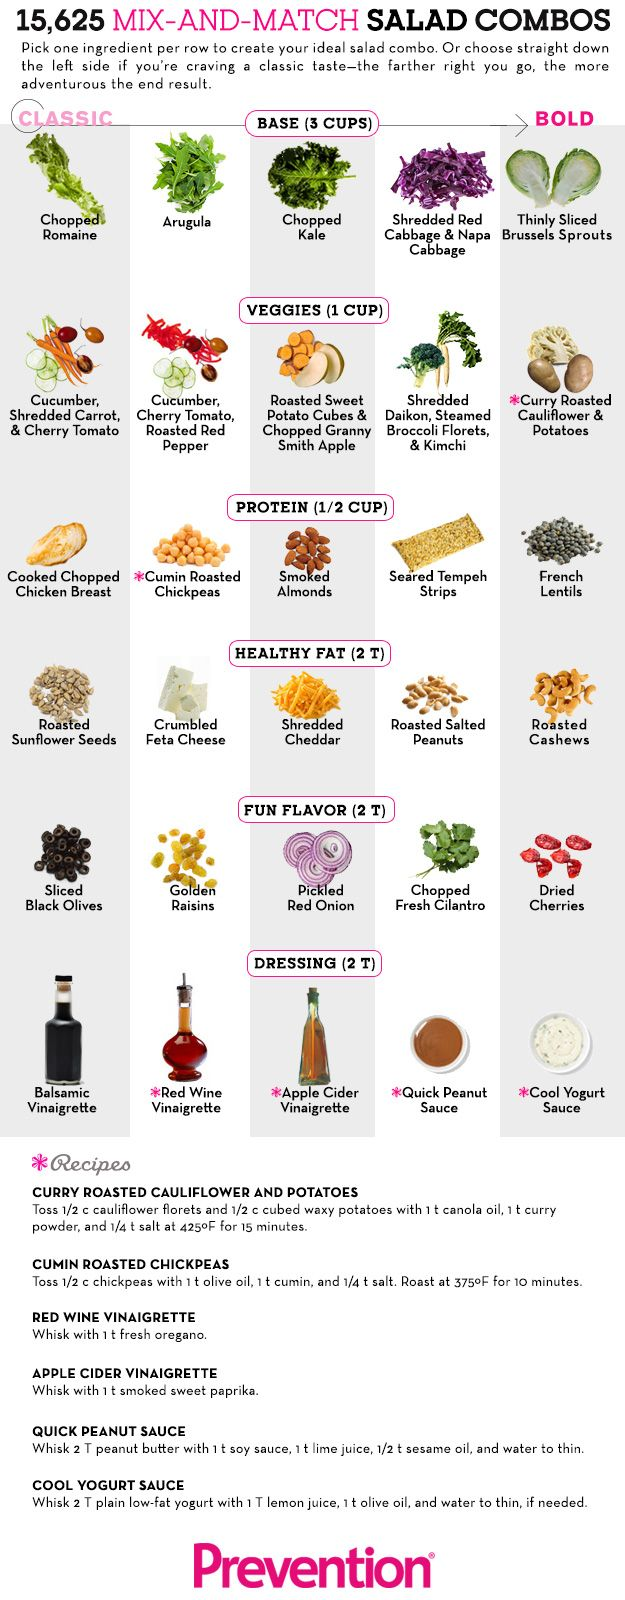 Salad Combos with Homemade Sauce Recipes | Diagrams For Easier Healthy Eating